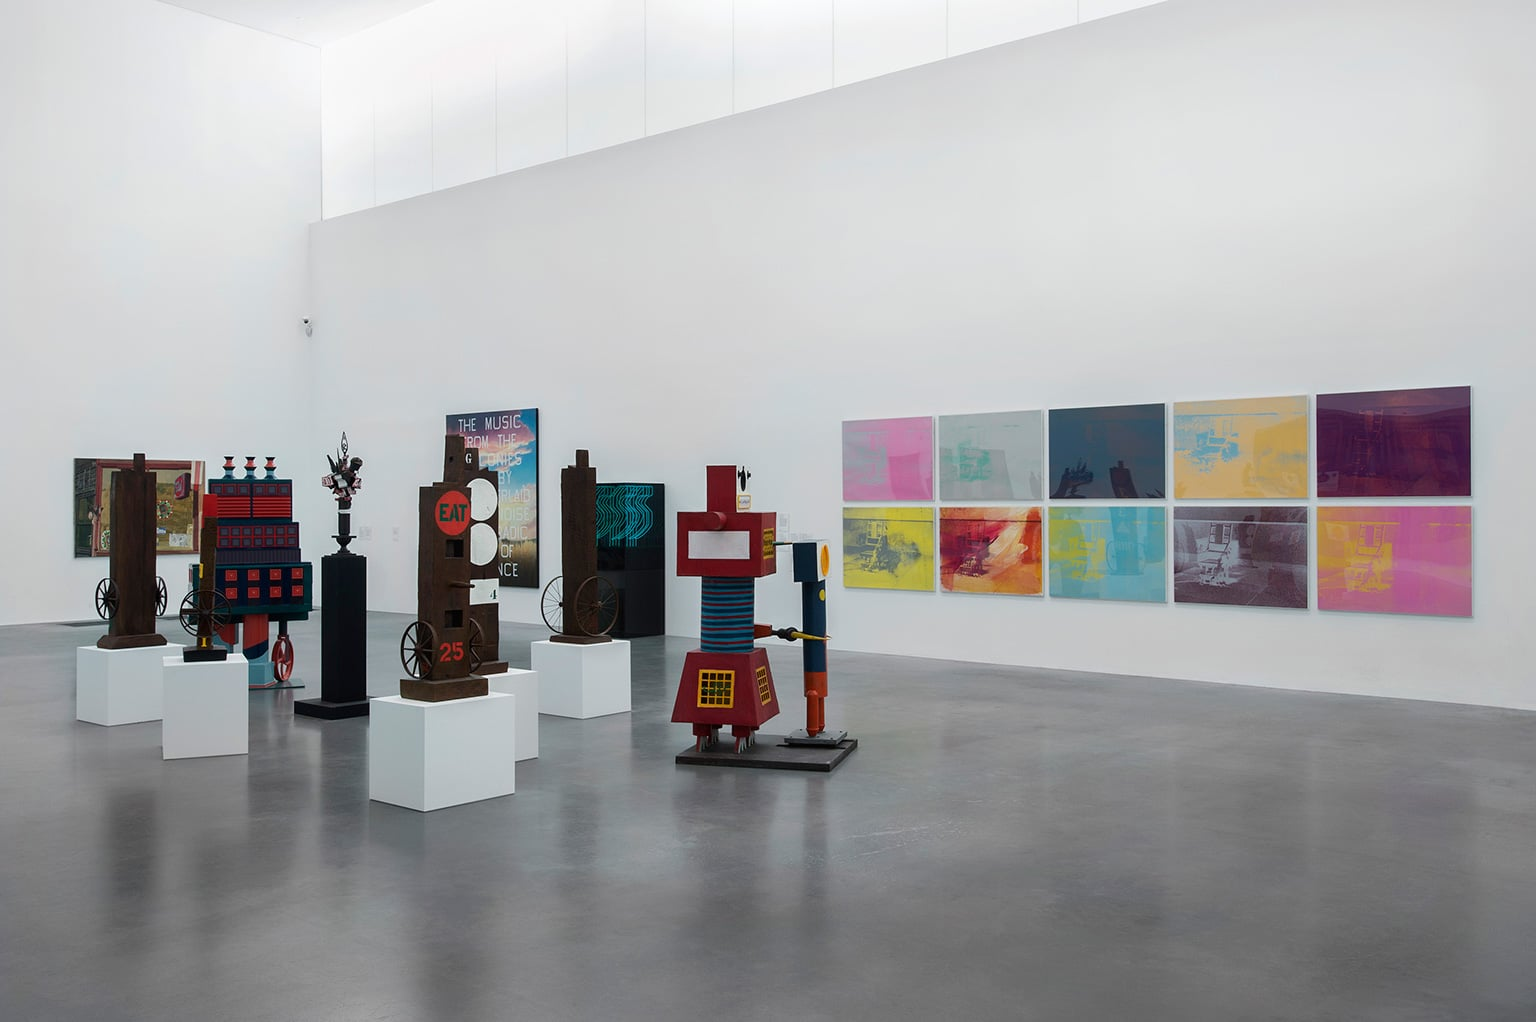 Installation view of Pop Myths